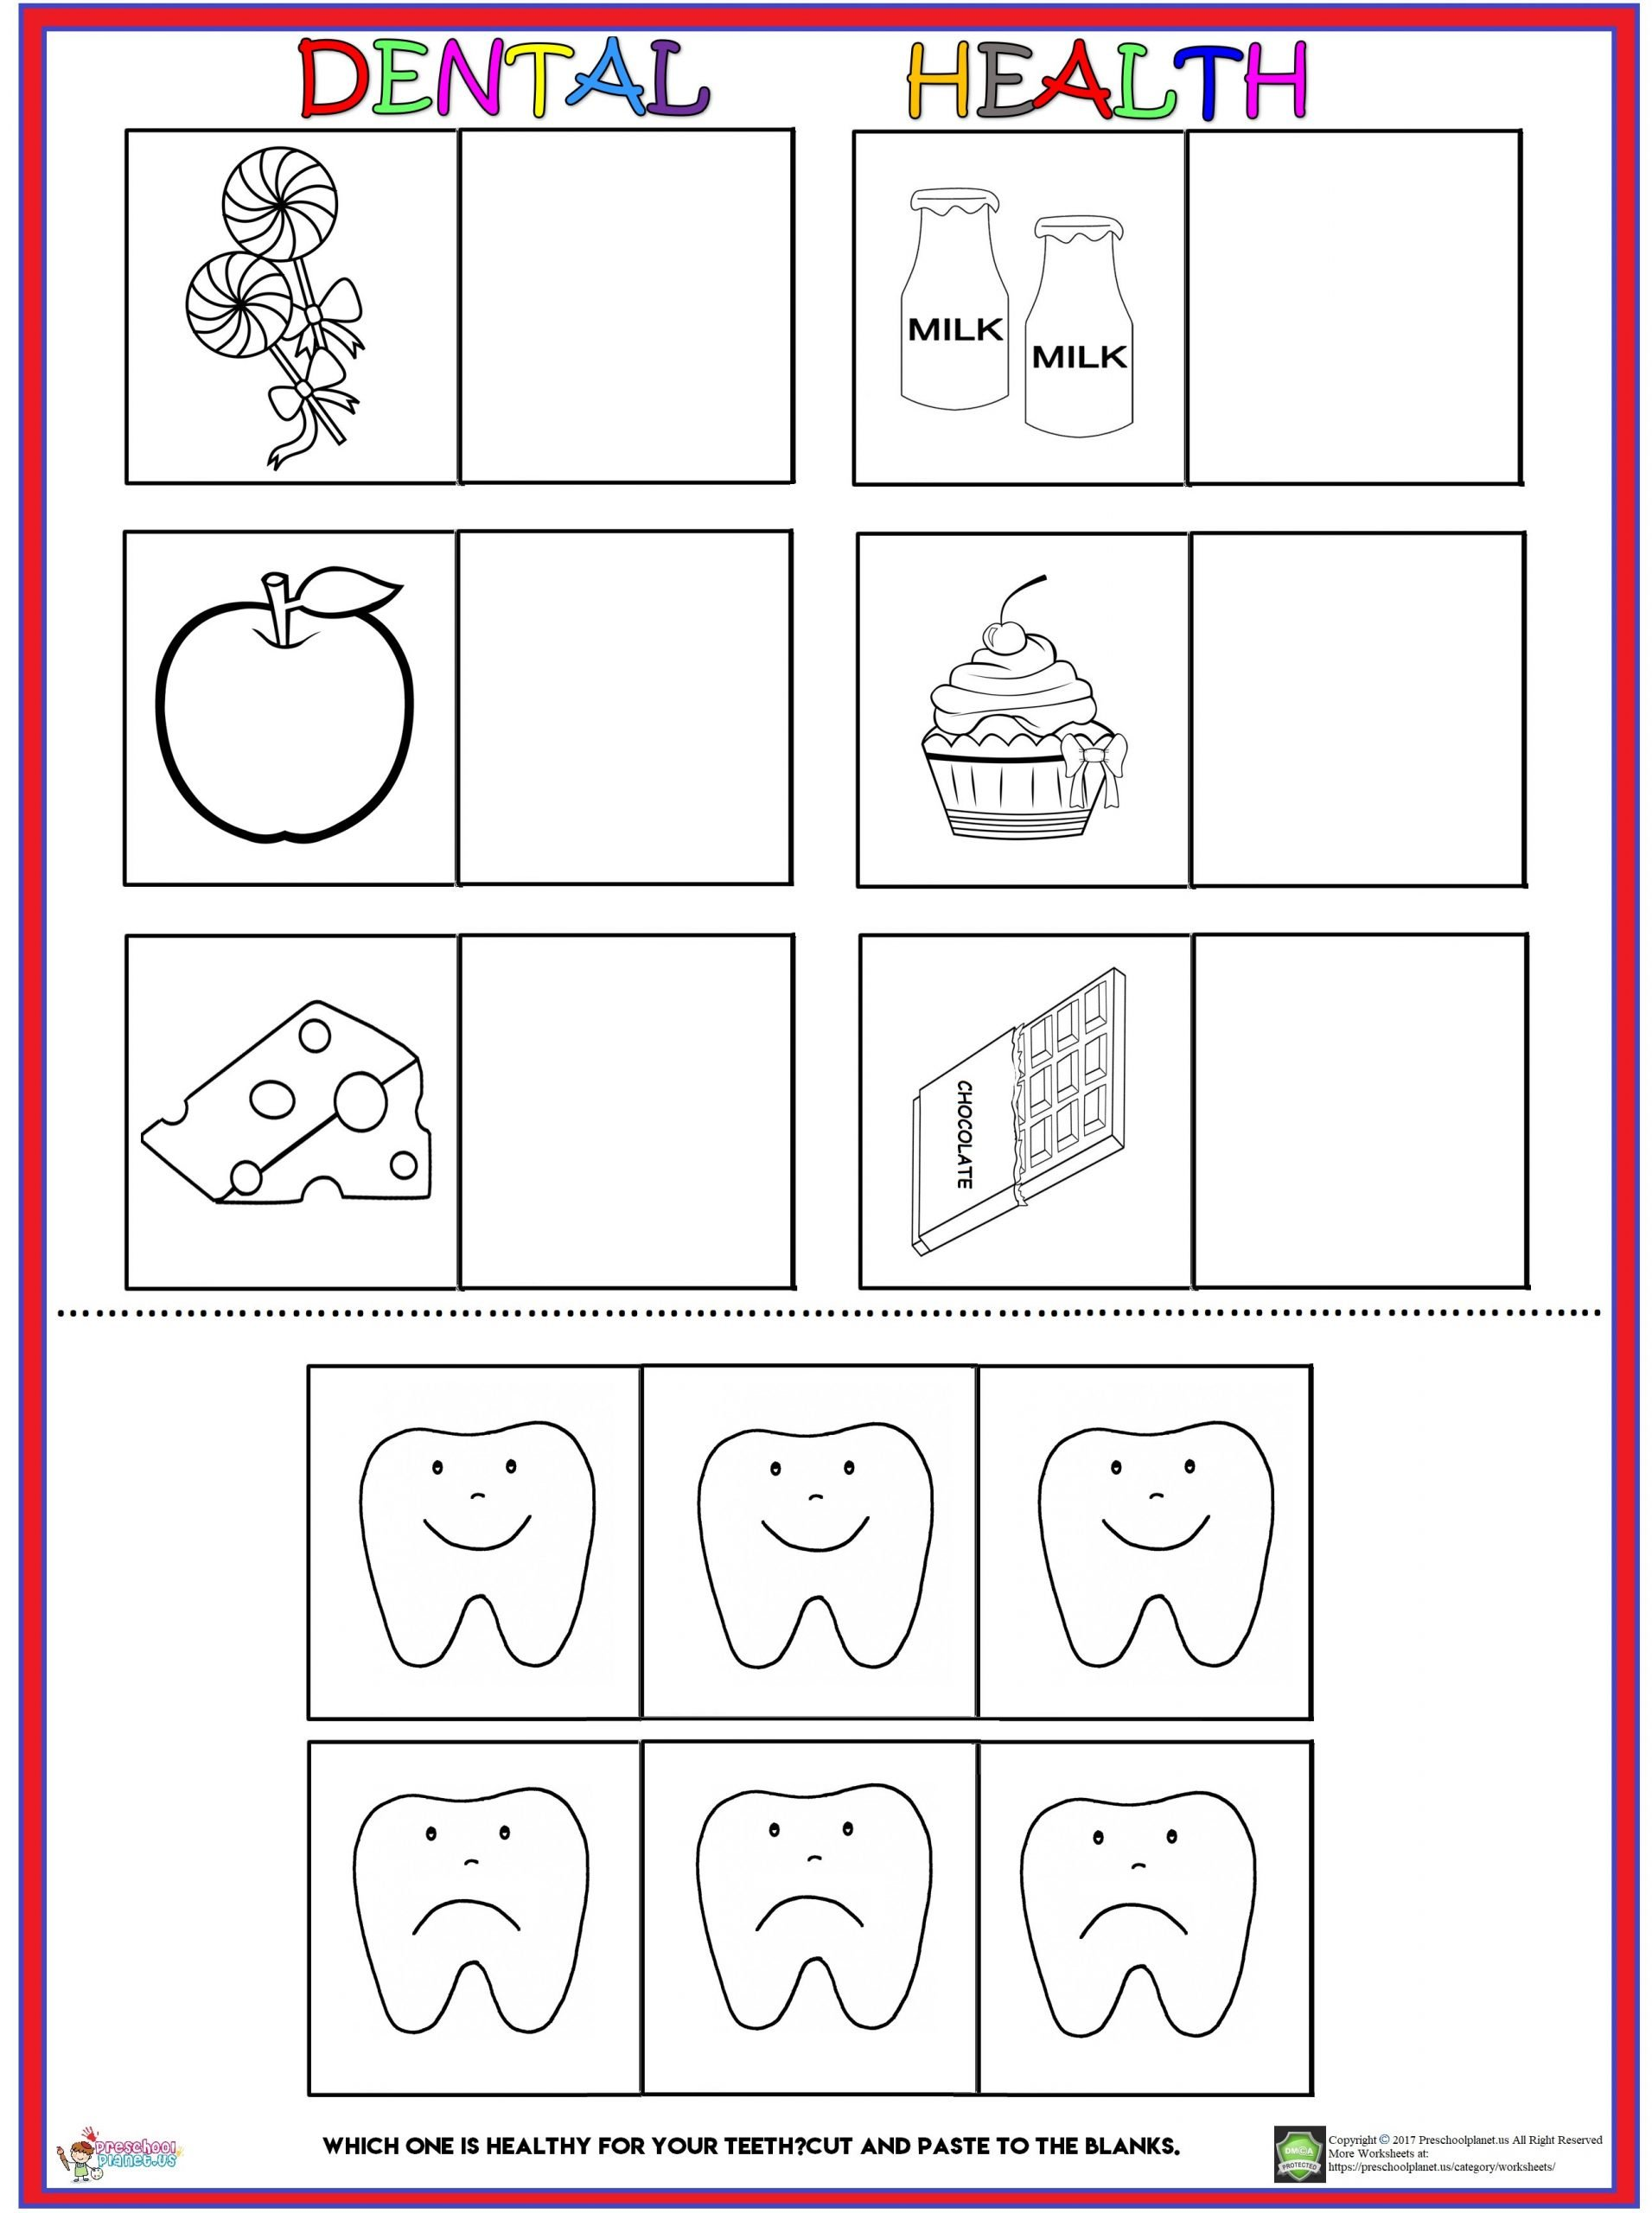 Dentist Worksheets for Kindergarten Dental Health Worksheet – Preschoolplanet